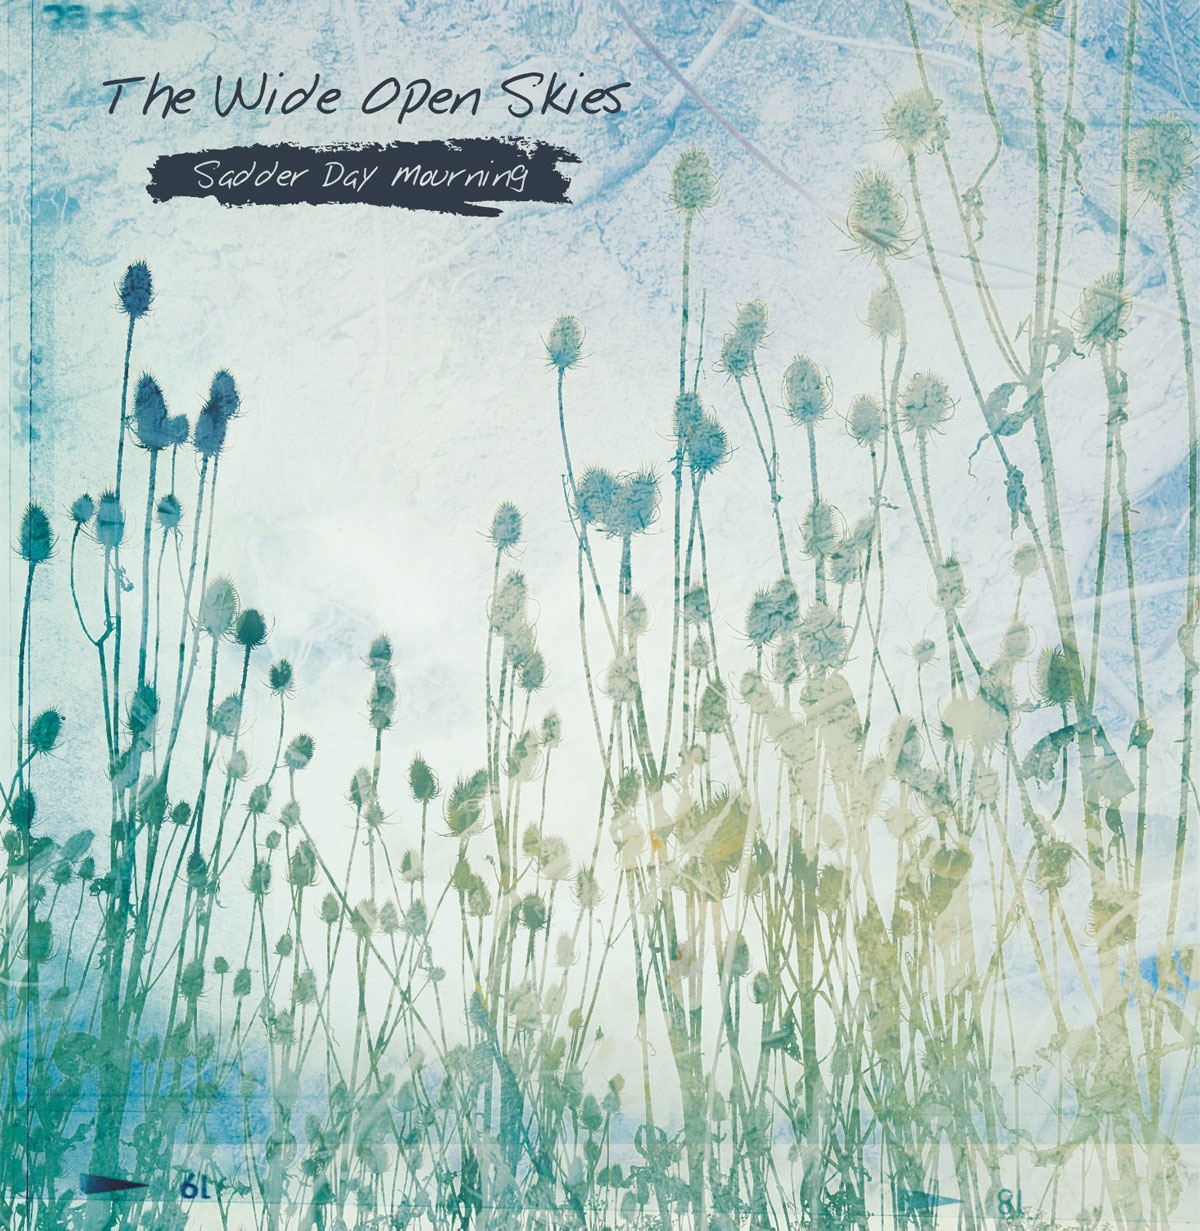 The Wide Open Skies CD album cover design